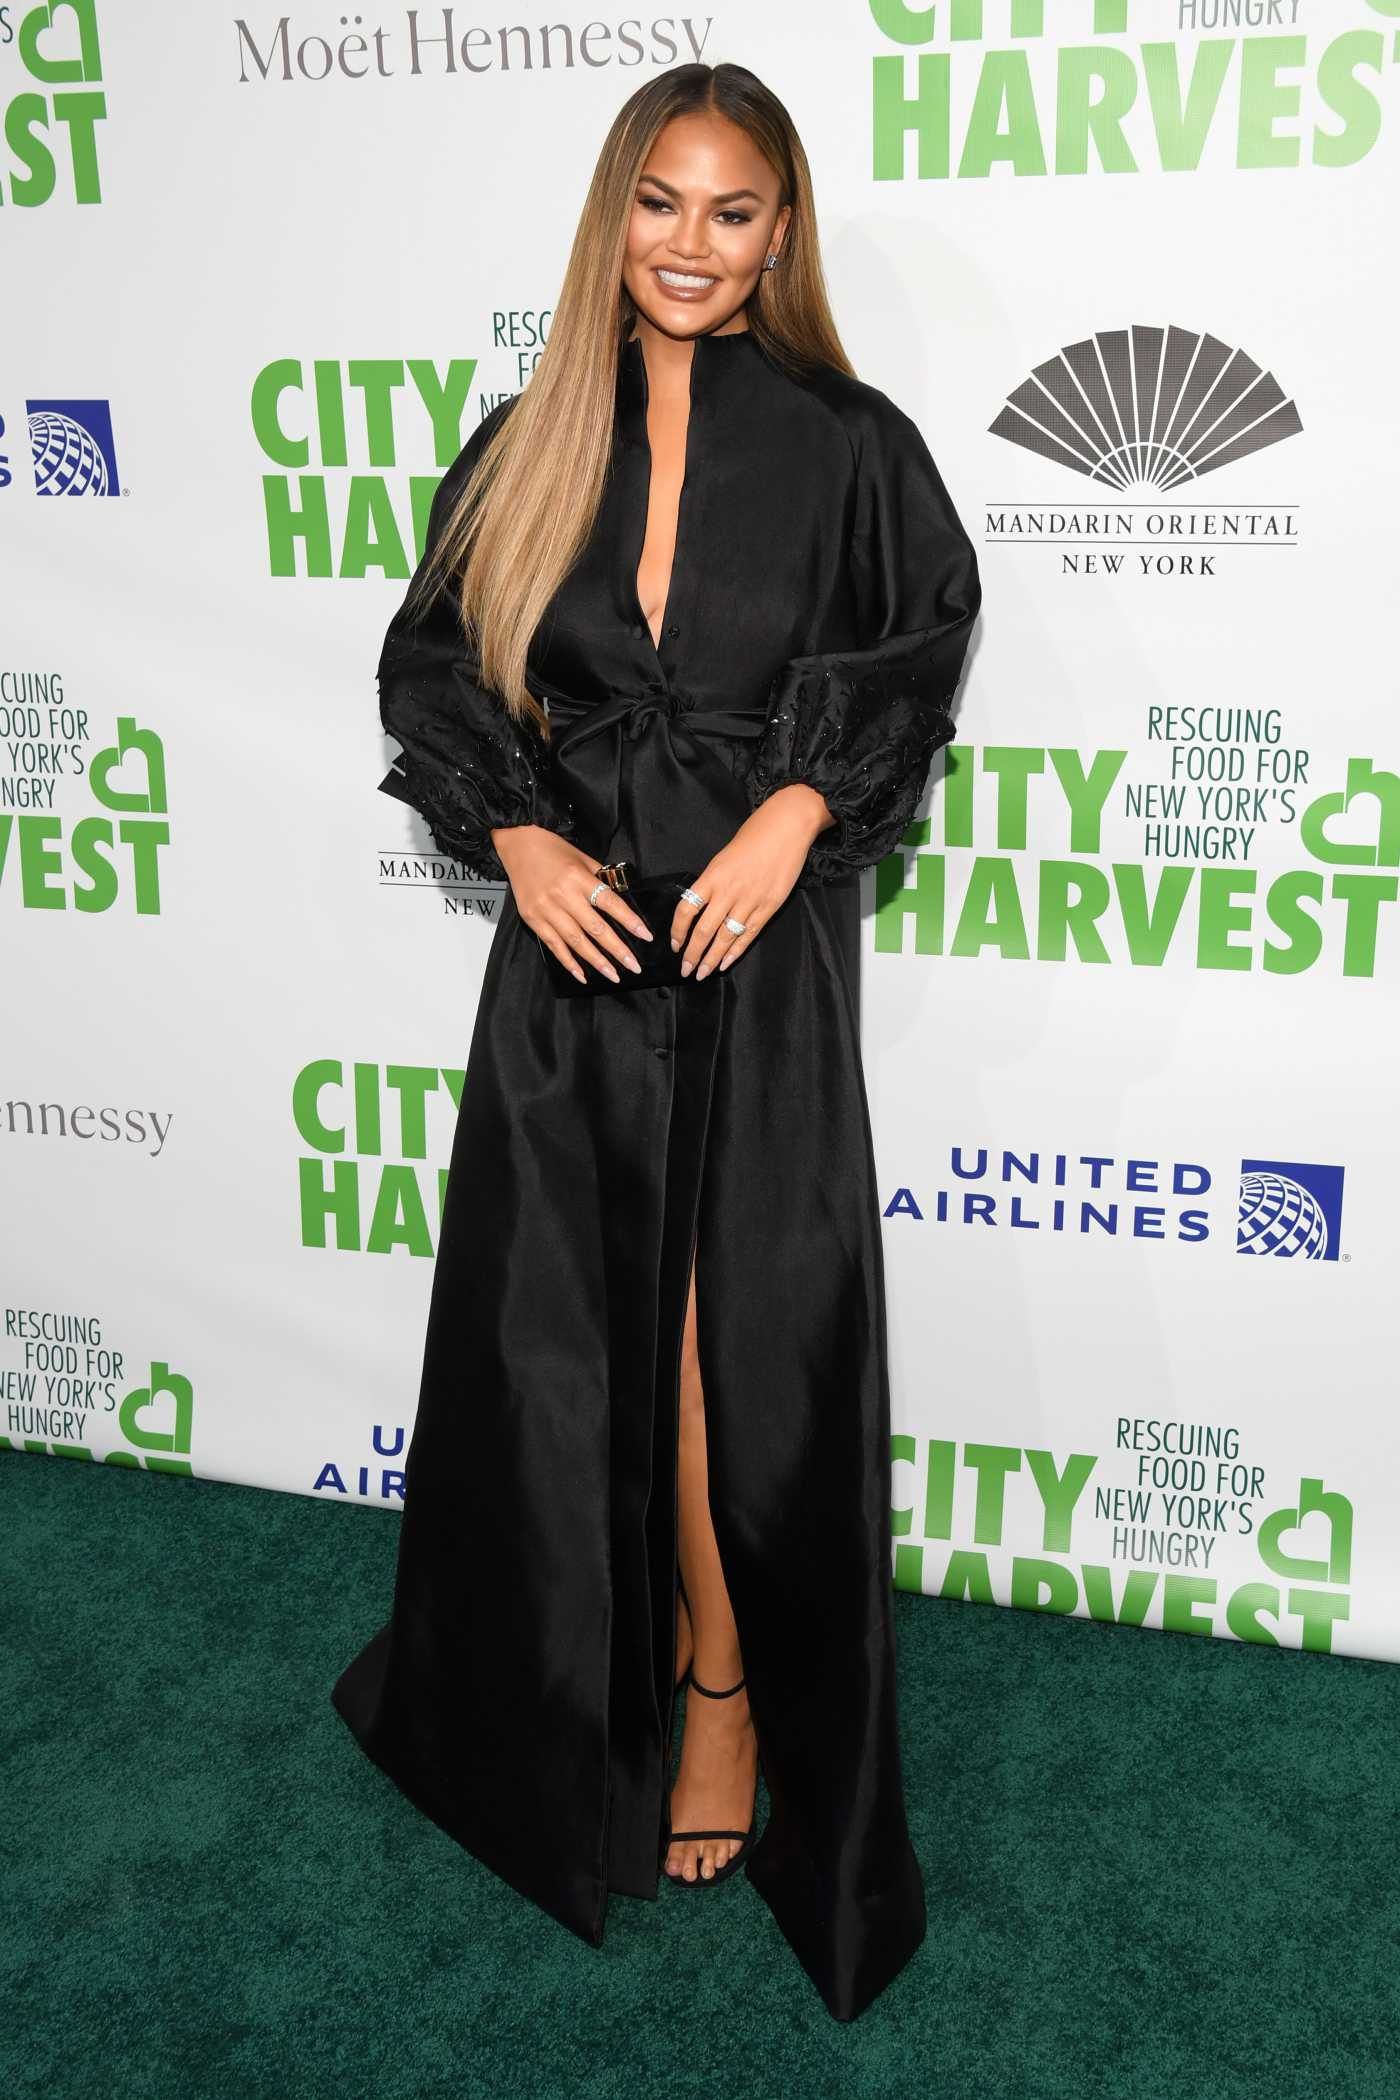 Chrissy Teigen Attends the 36th Annual City Harvest Gala in New York 04/30/2019